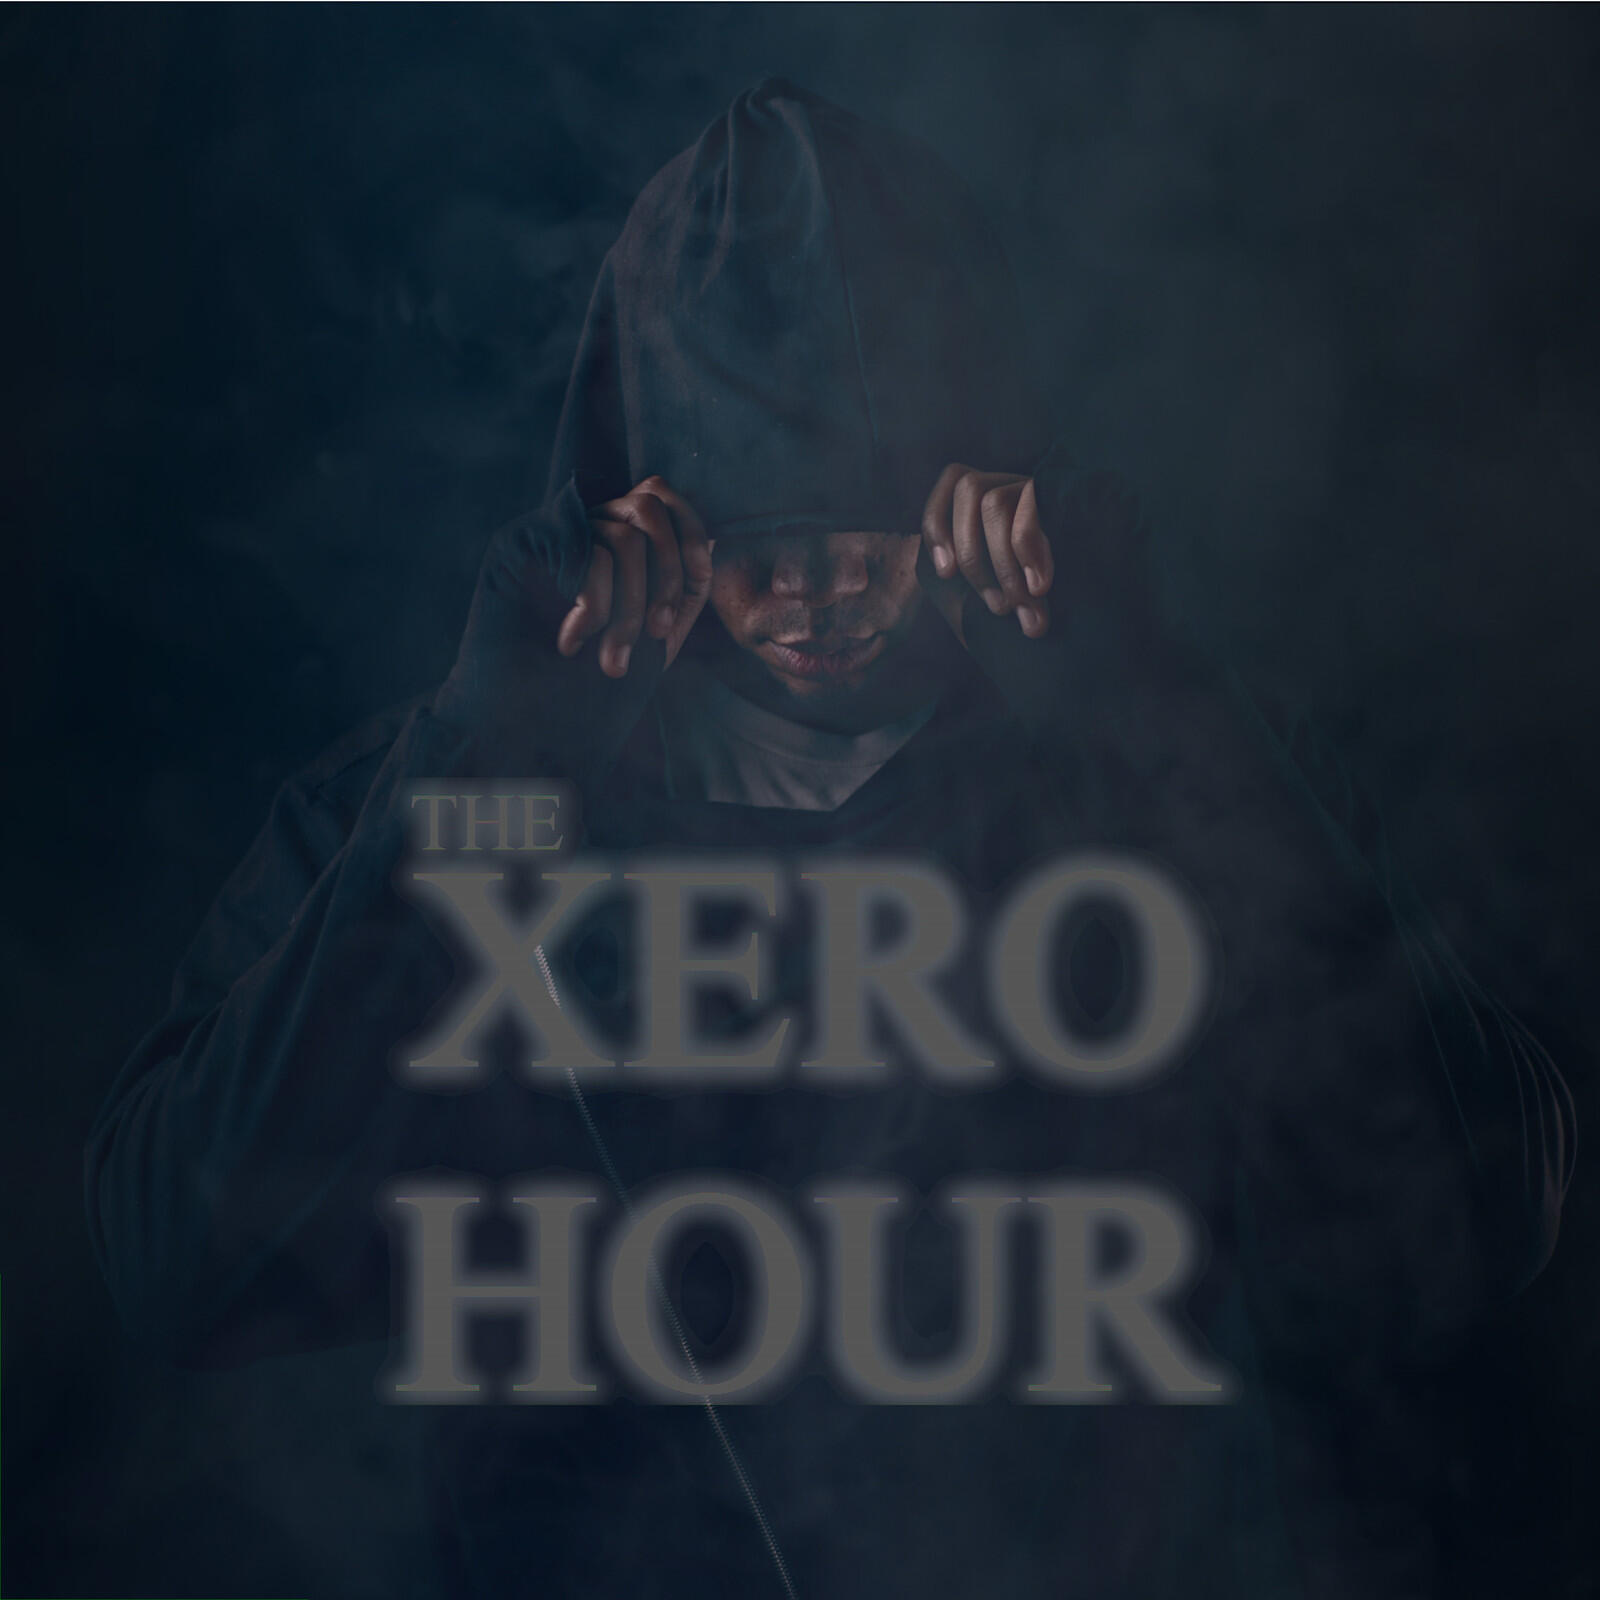 65: Xero Hour Podcast 65 - Christians, We Need to address the Culture